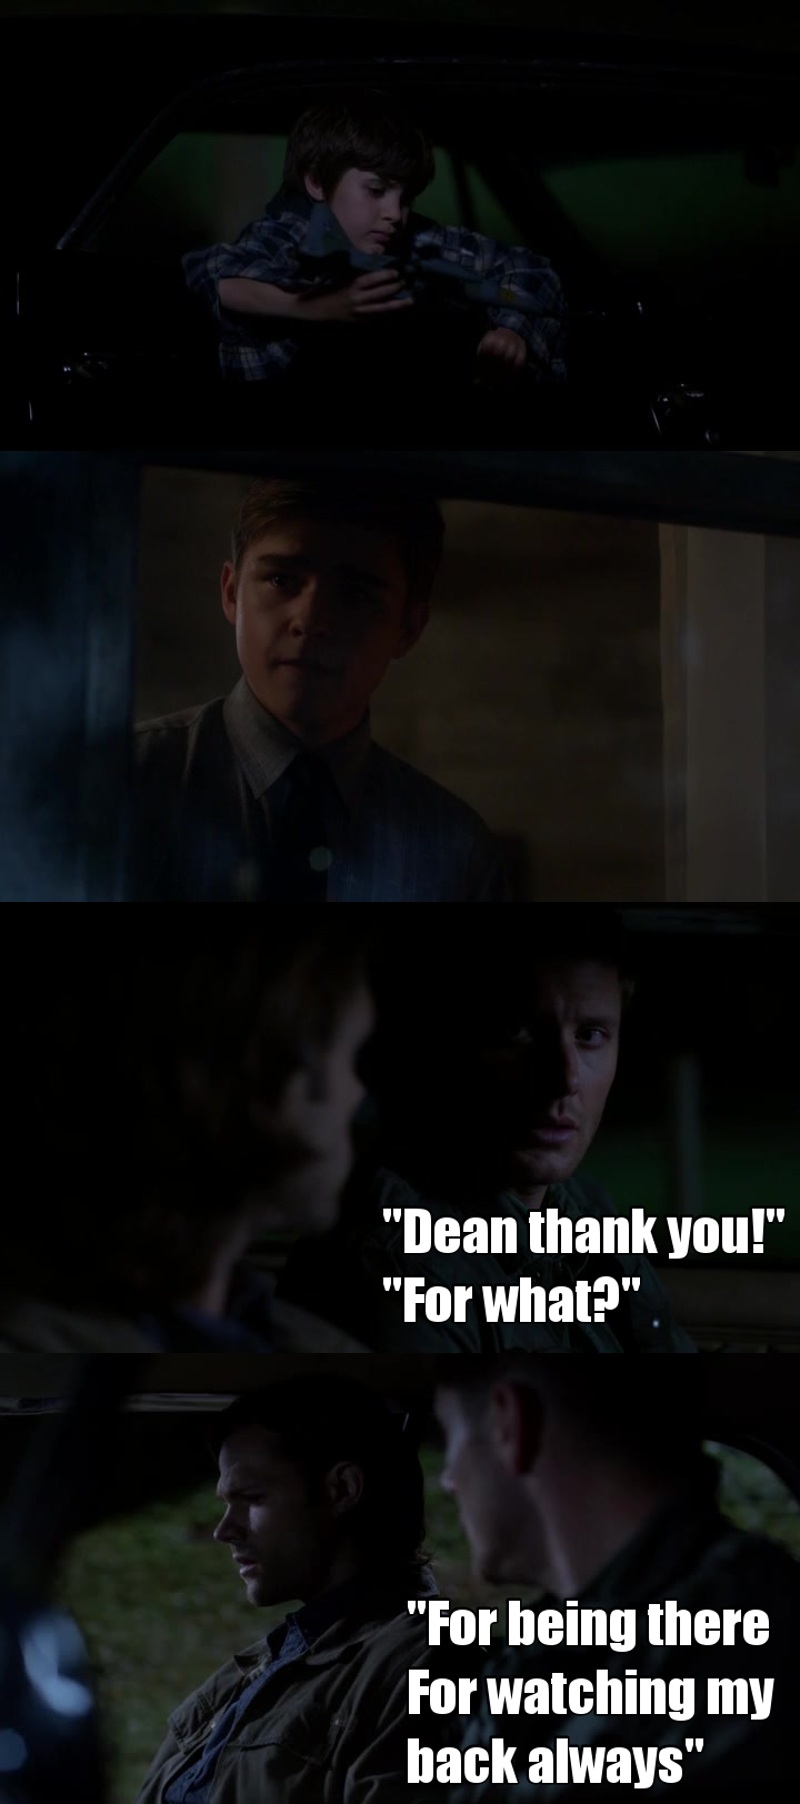 This episode is so damn sad but at the same time is so good and it represents perfectly the relationship between Dean and Sam. Dean is the best brother ever, and Sam knows that.